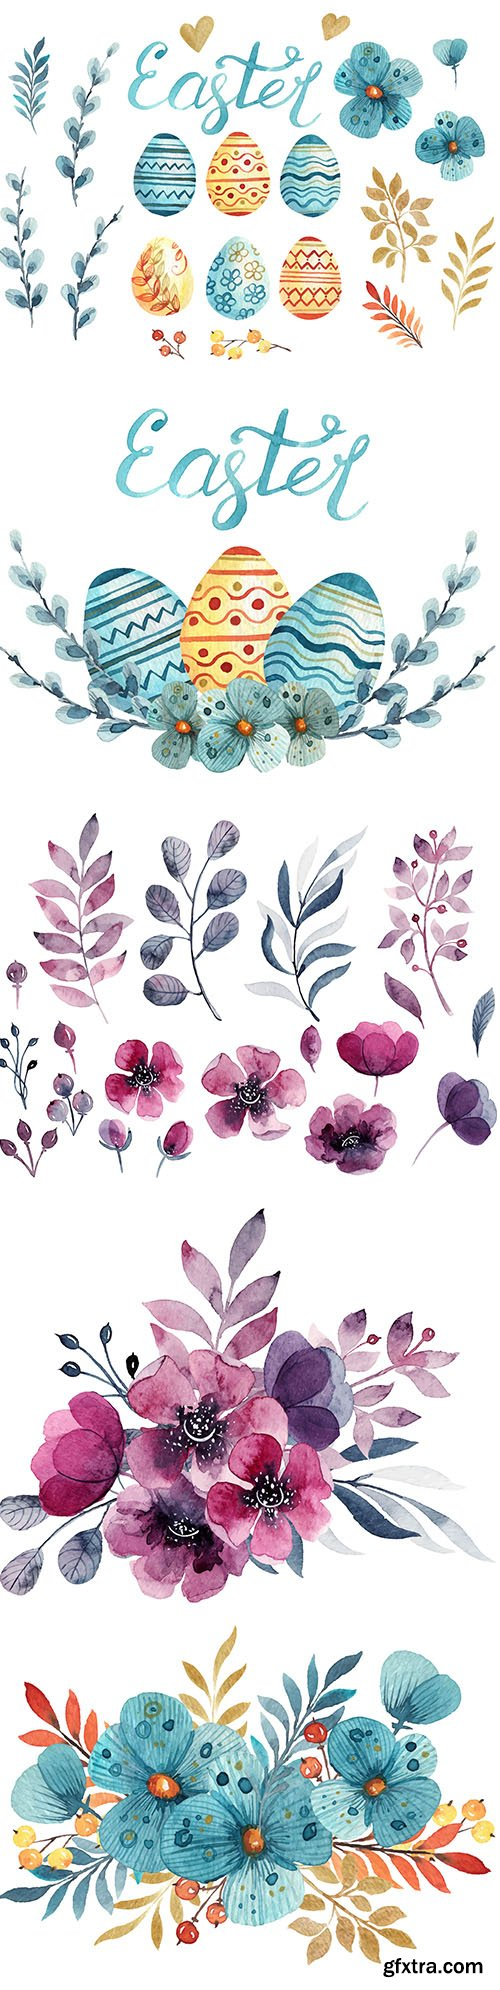 Watercolor Elements Easter Celebration and Floral Decoration